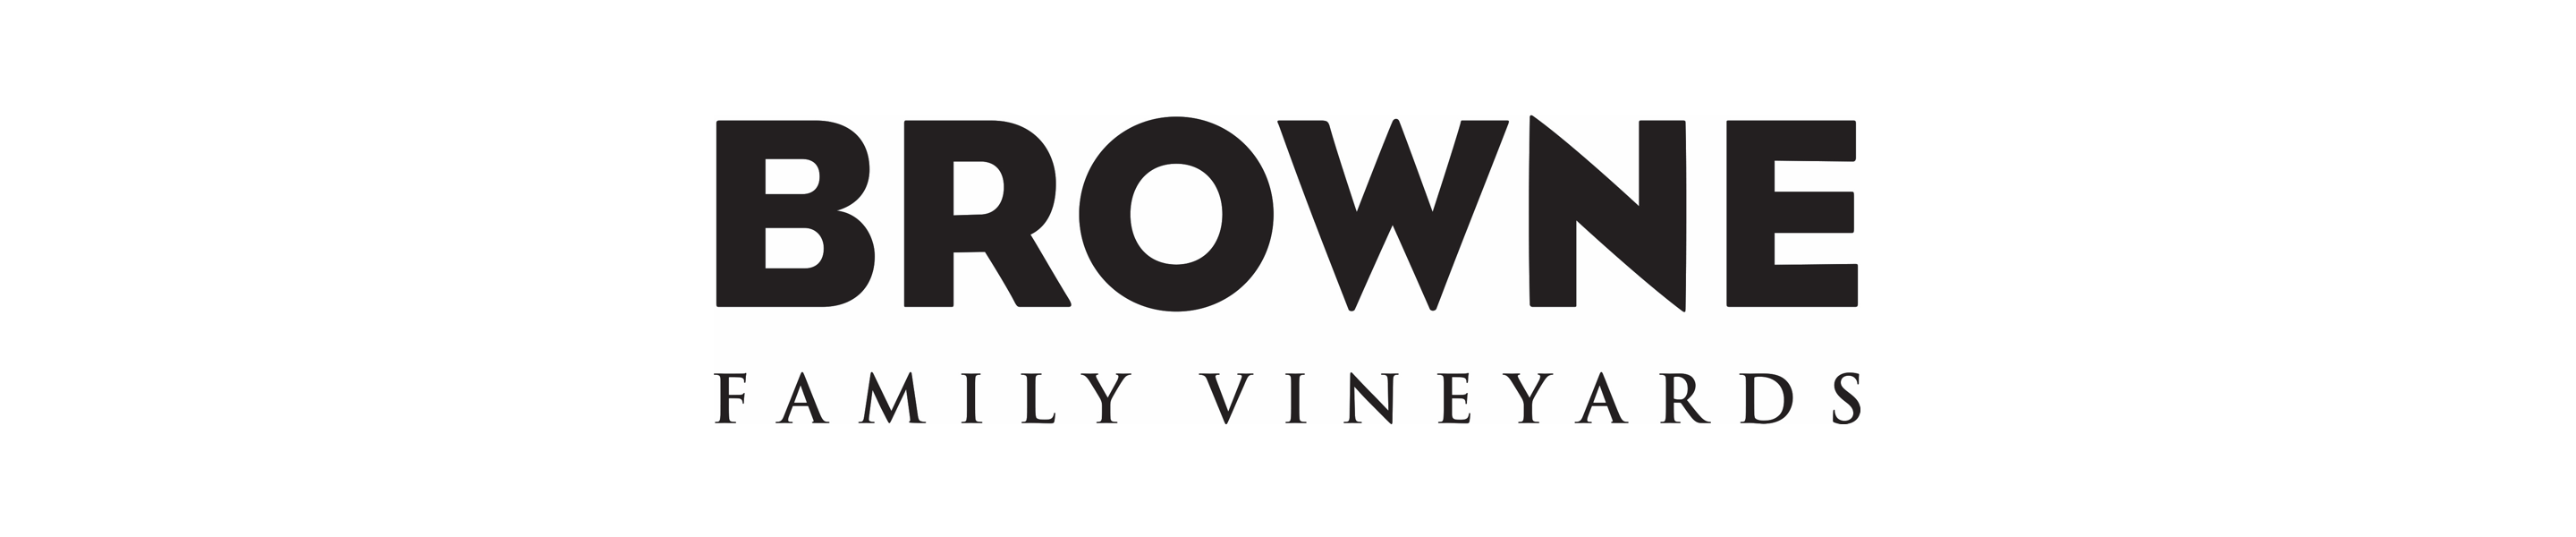 Andrew Browne is the first to tell you he's a tastemaker, not a winemaker. Andrew carefully and deliberately selected vineyards, winemakers and cellar masters committed to world-class wine production to represent the best of the Columbia Valley AVA.